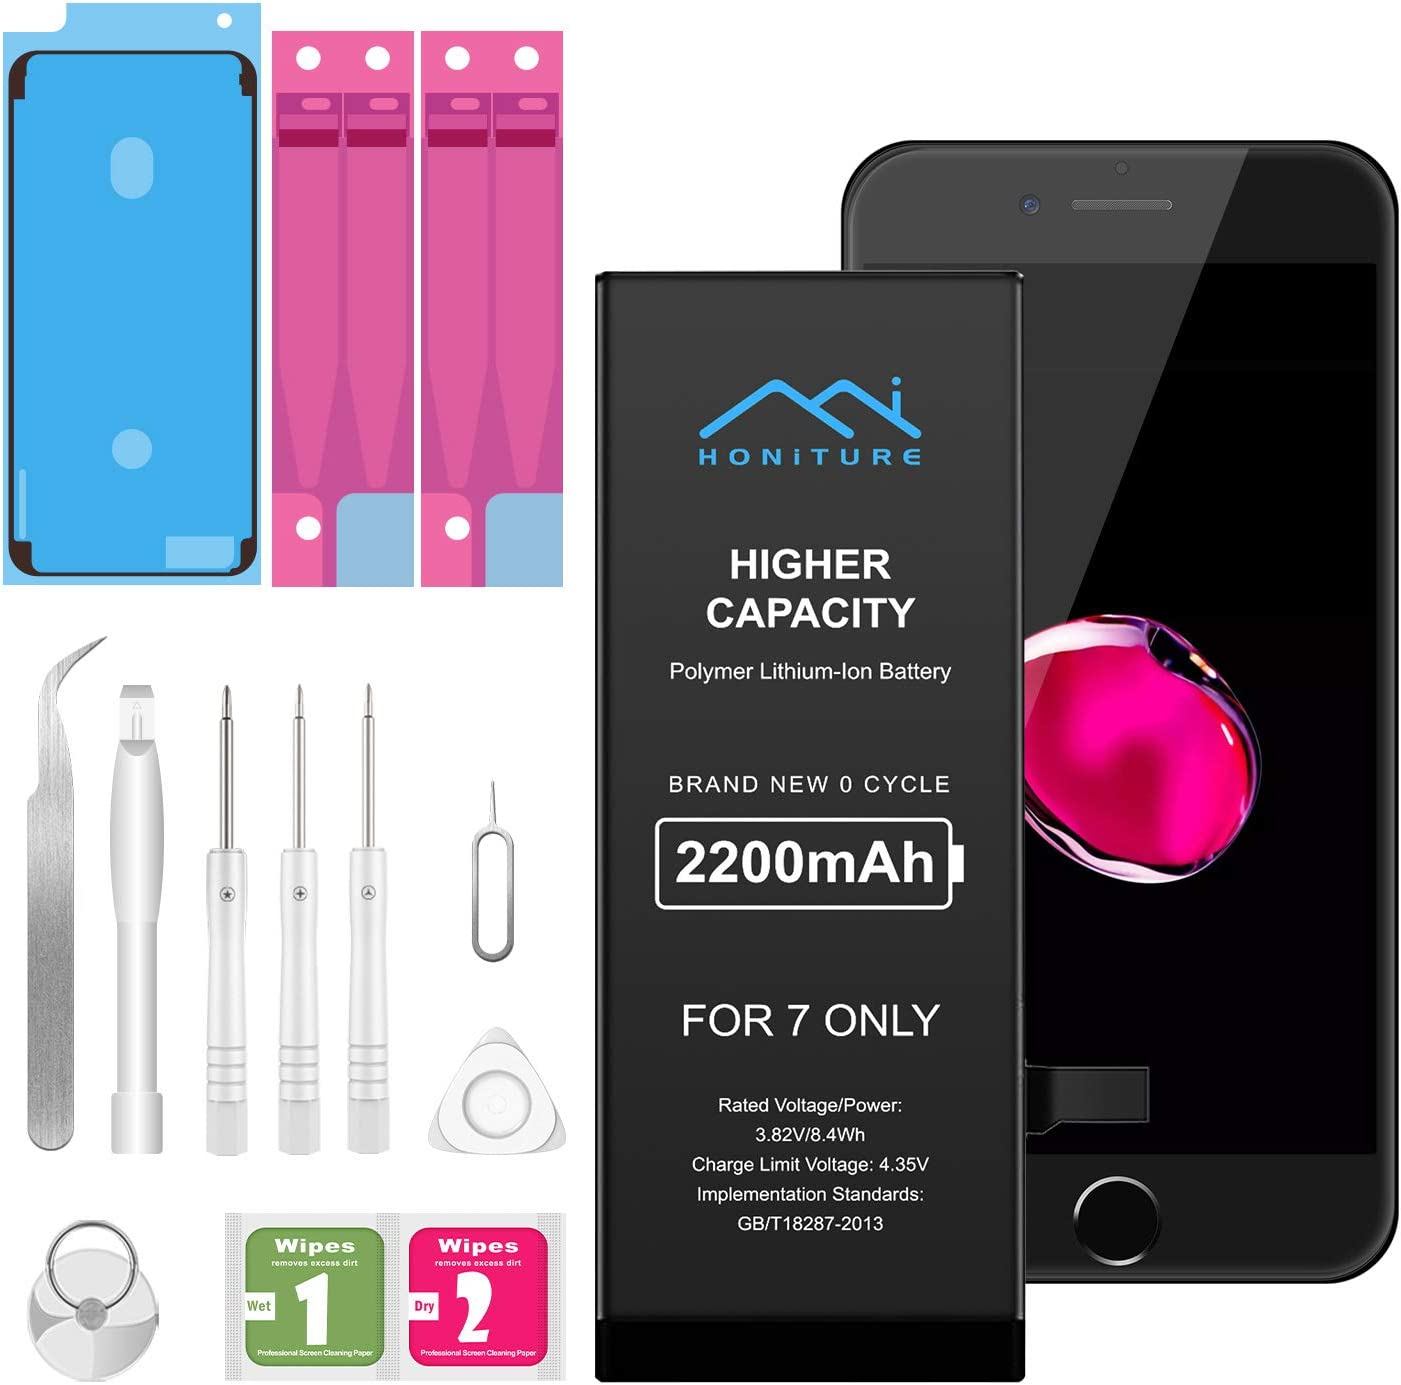 EVARY 2200mAh Battery for iPhone 6 with Complete Repair Tool Kits and Instructions 22/% High Capacity Replacement Battery 0 Cycle